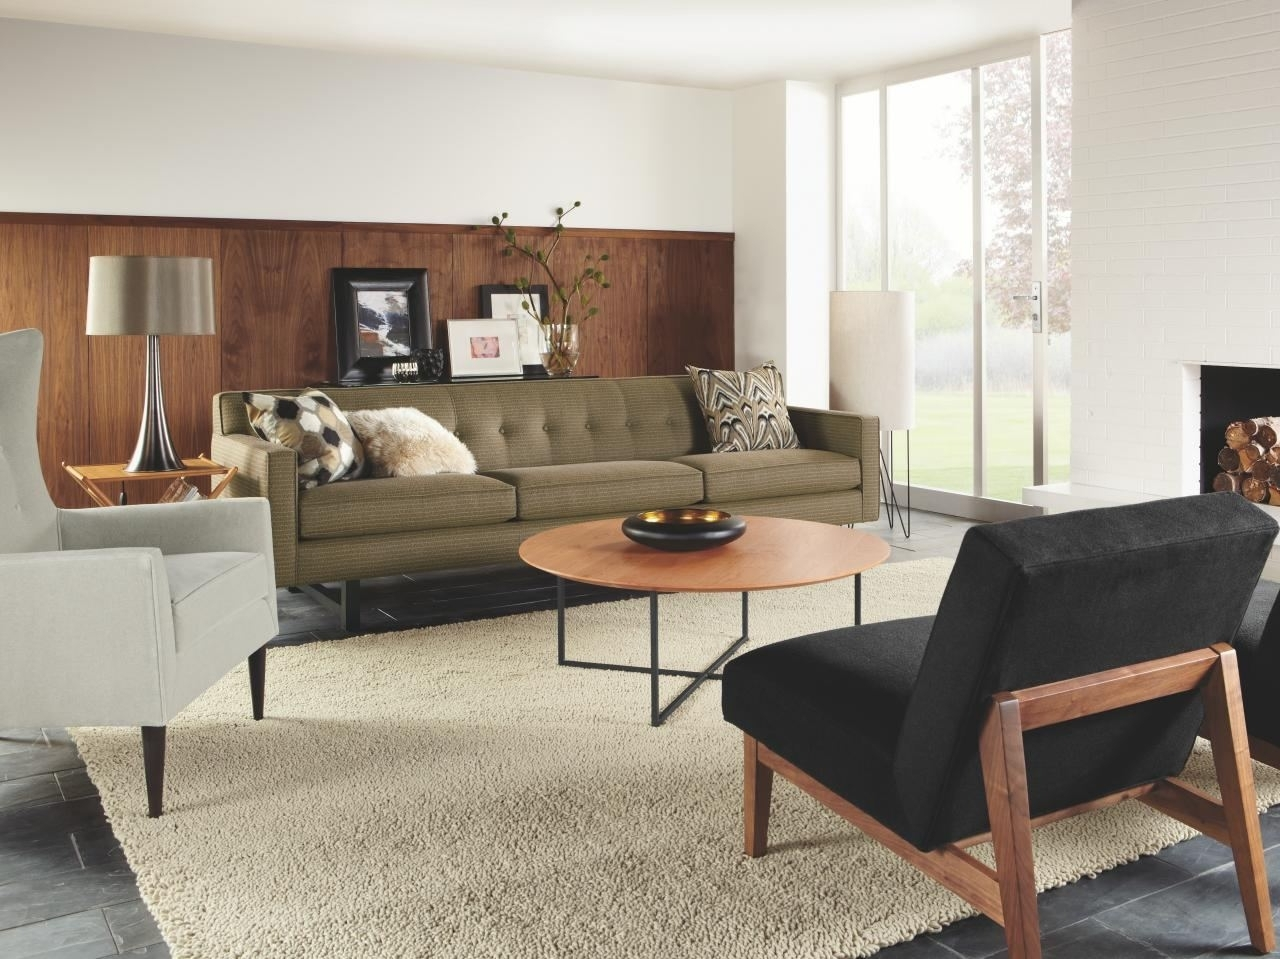 Living Room Designs Indian Style Black White Leather Lounge Sofa Within Latest Leather Lounge Sofas (View 9 of 20)